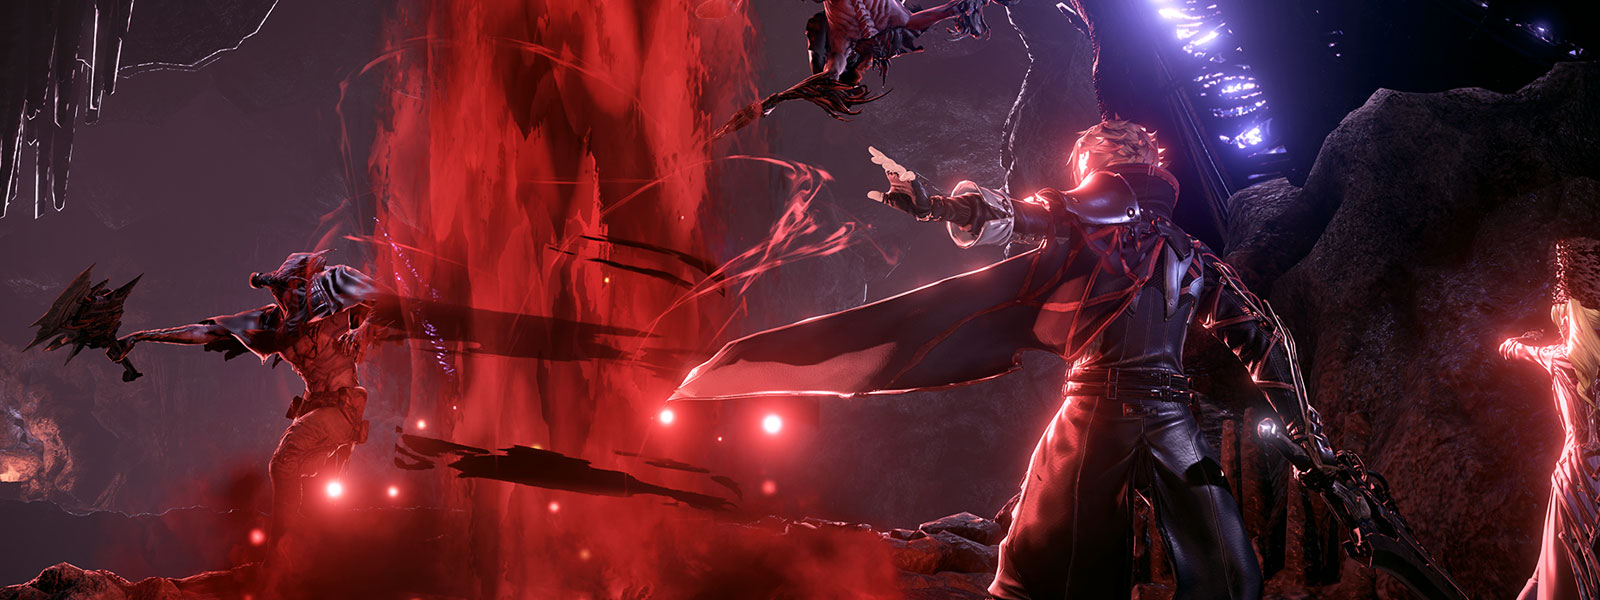 Code Vein character with blood code enhancements and a sword